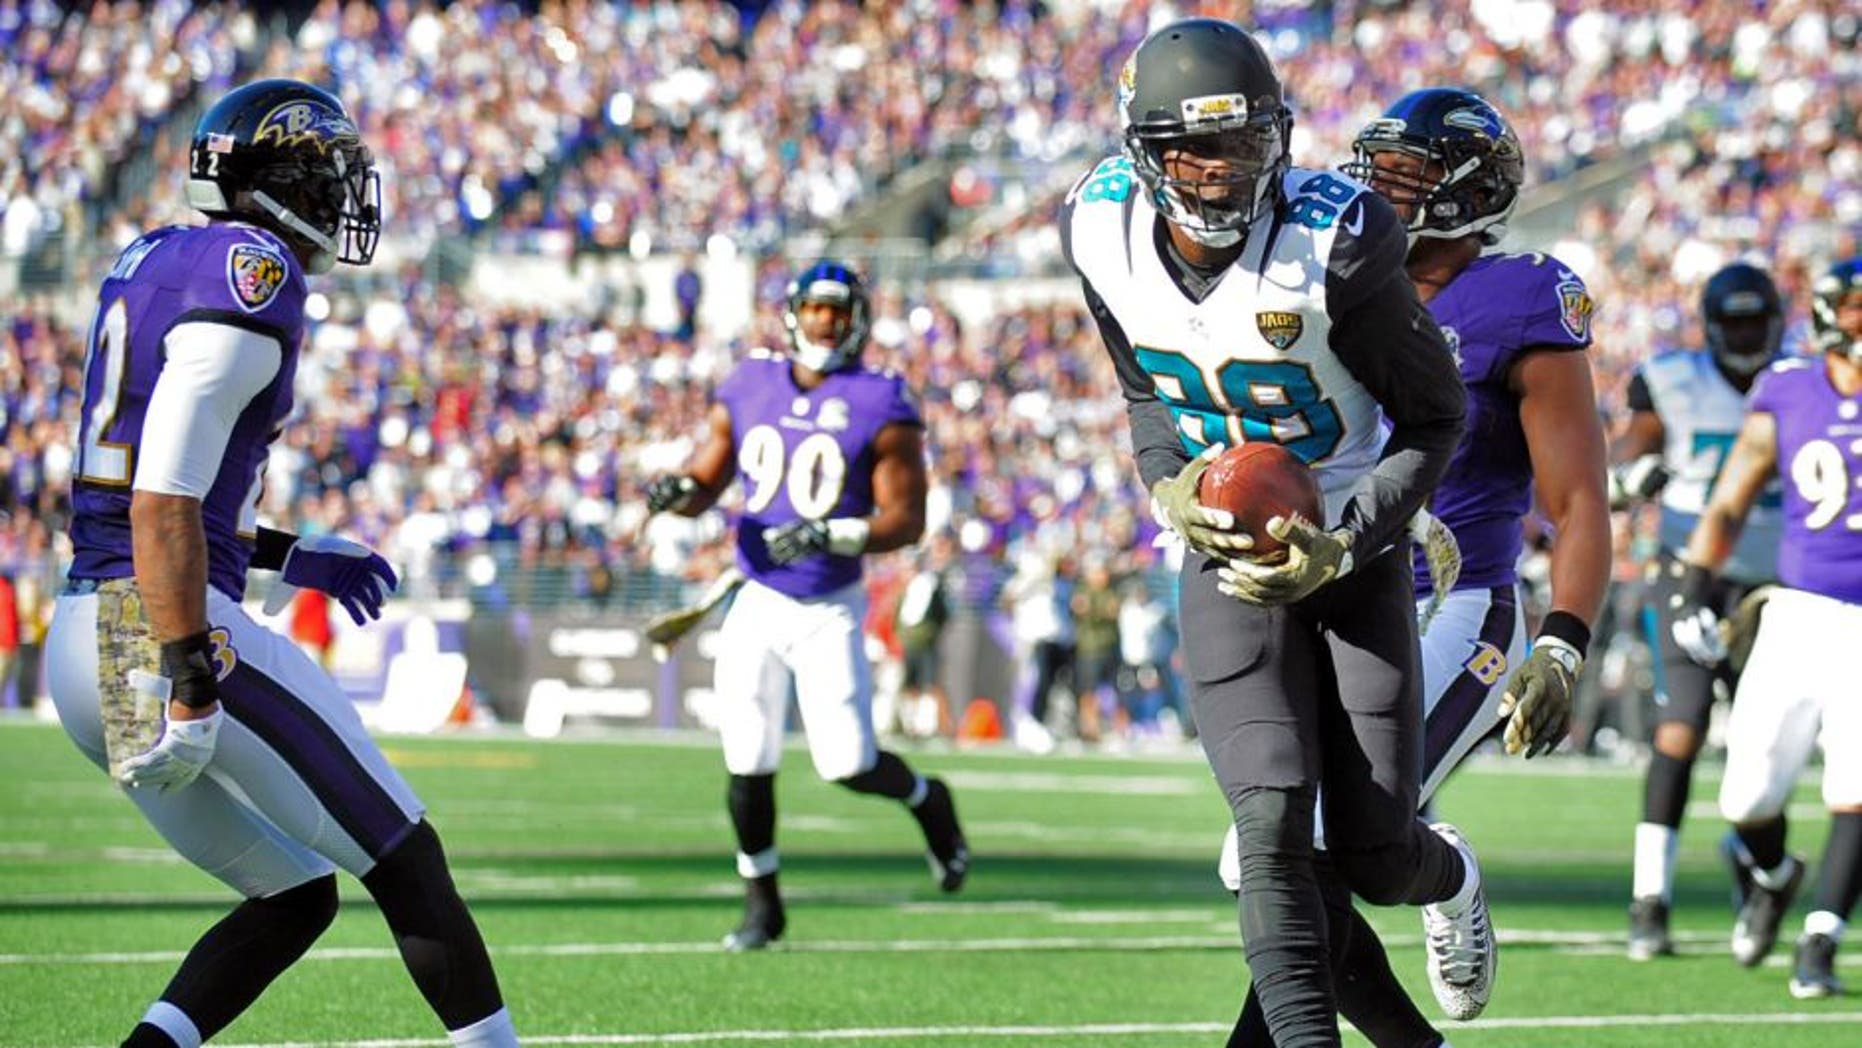 Nov 15, 2015; Baltimore, MD, USA; Jacksonville Jaguars wide receiver Allen Hurns (88) scores a touchdown in the first quarter against the Baltimore Ravens at M&T Bank Stadium. Mandatory Credit: Evan Habeeb-USA TODAY Sports